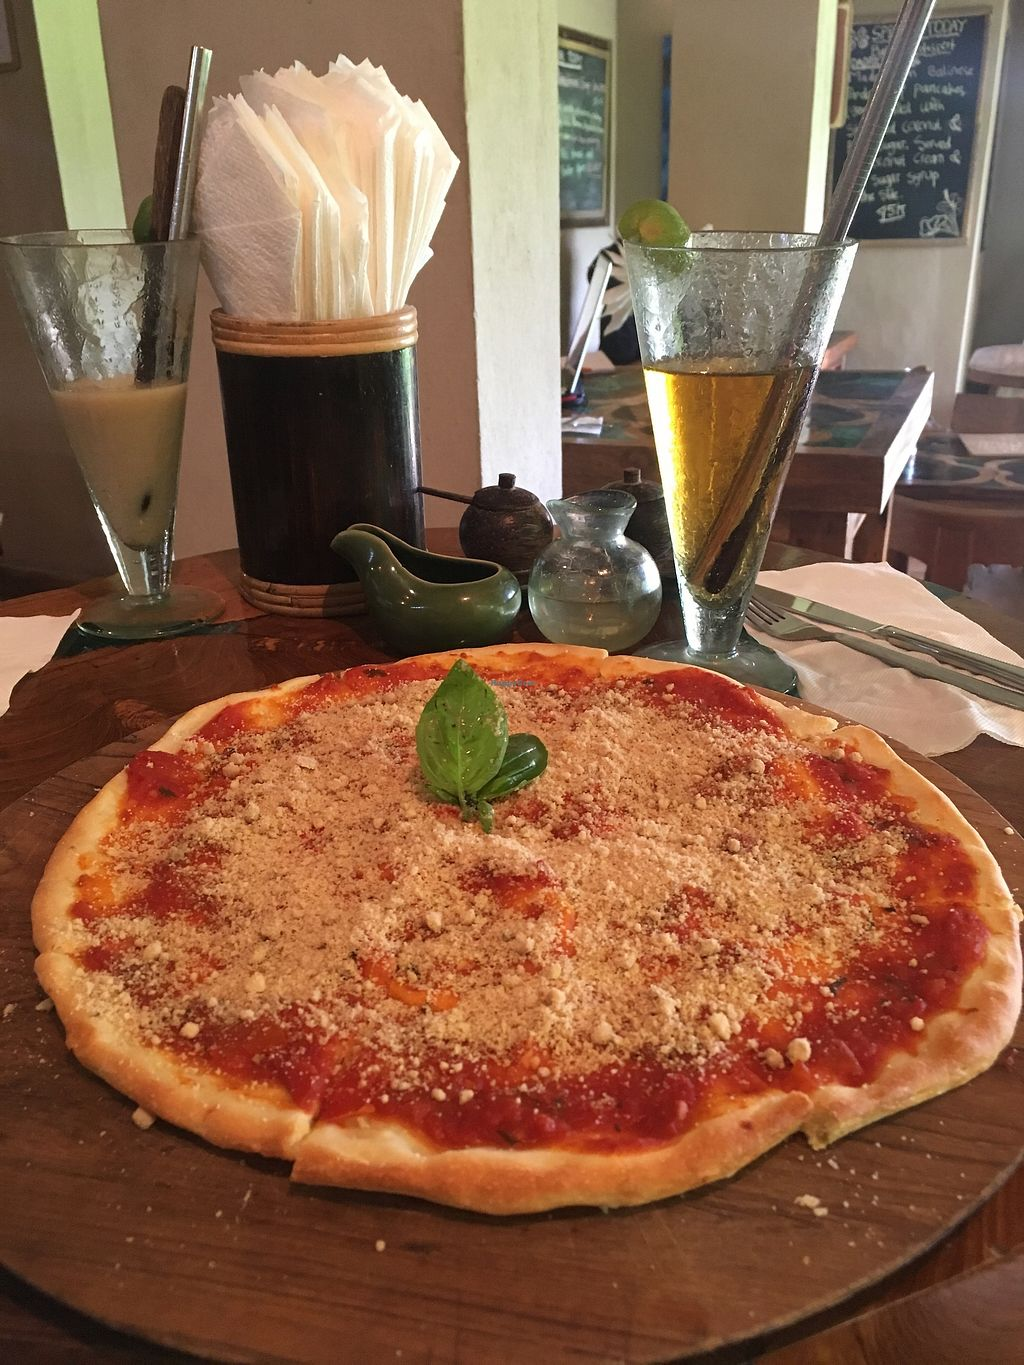 """Photo of Atman Nourish Kafe  by <a href=""""/members/profile/jojoinbrighton"""">jojoinbrighton</a> <br/>vegan pizza <br/> August 15, 2017  - <a href='/contact/abuse/image/91940/292782'>Report</a>"""